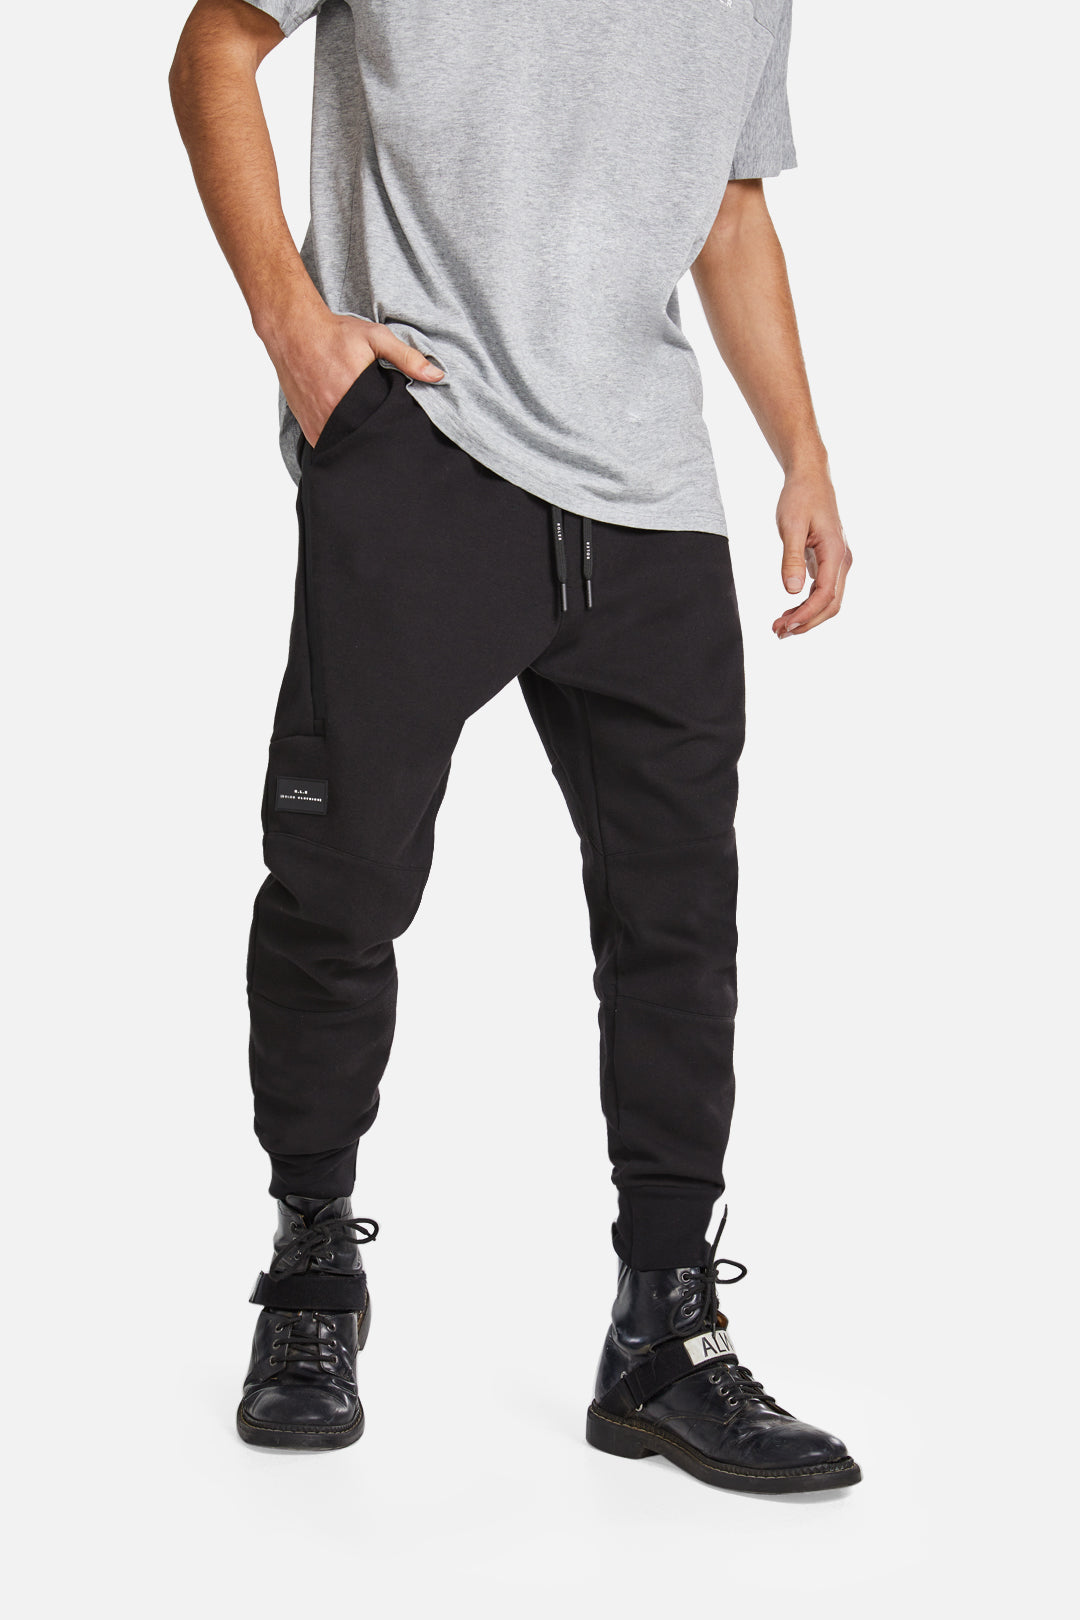 The Witton Trackie - Black - Roler Clothing